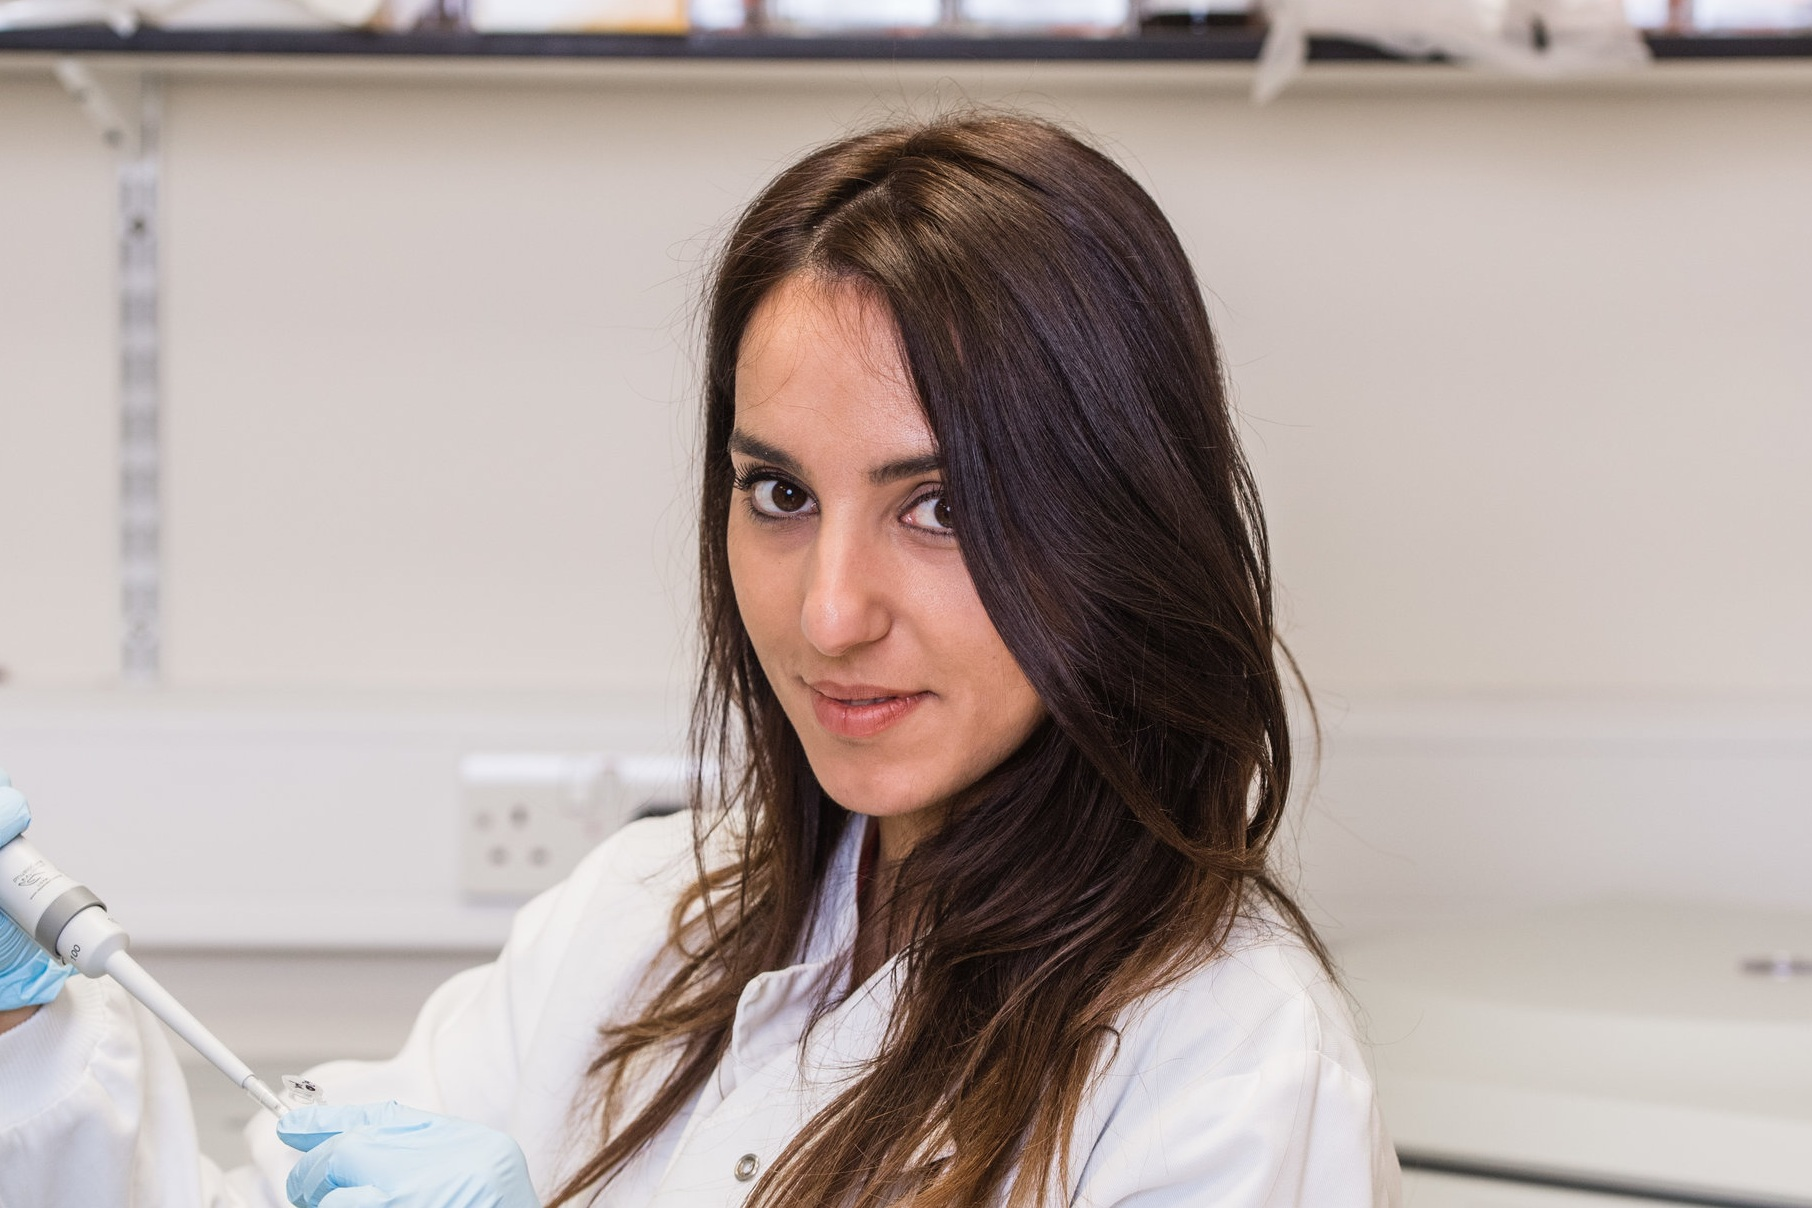 Paola Nocerino  Research Assistant